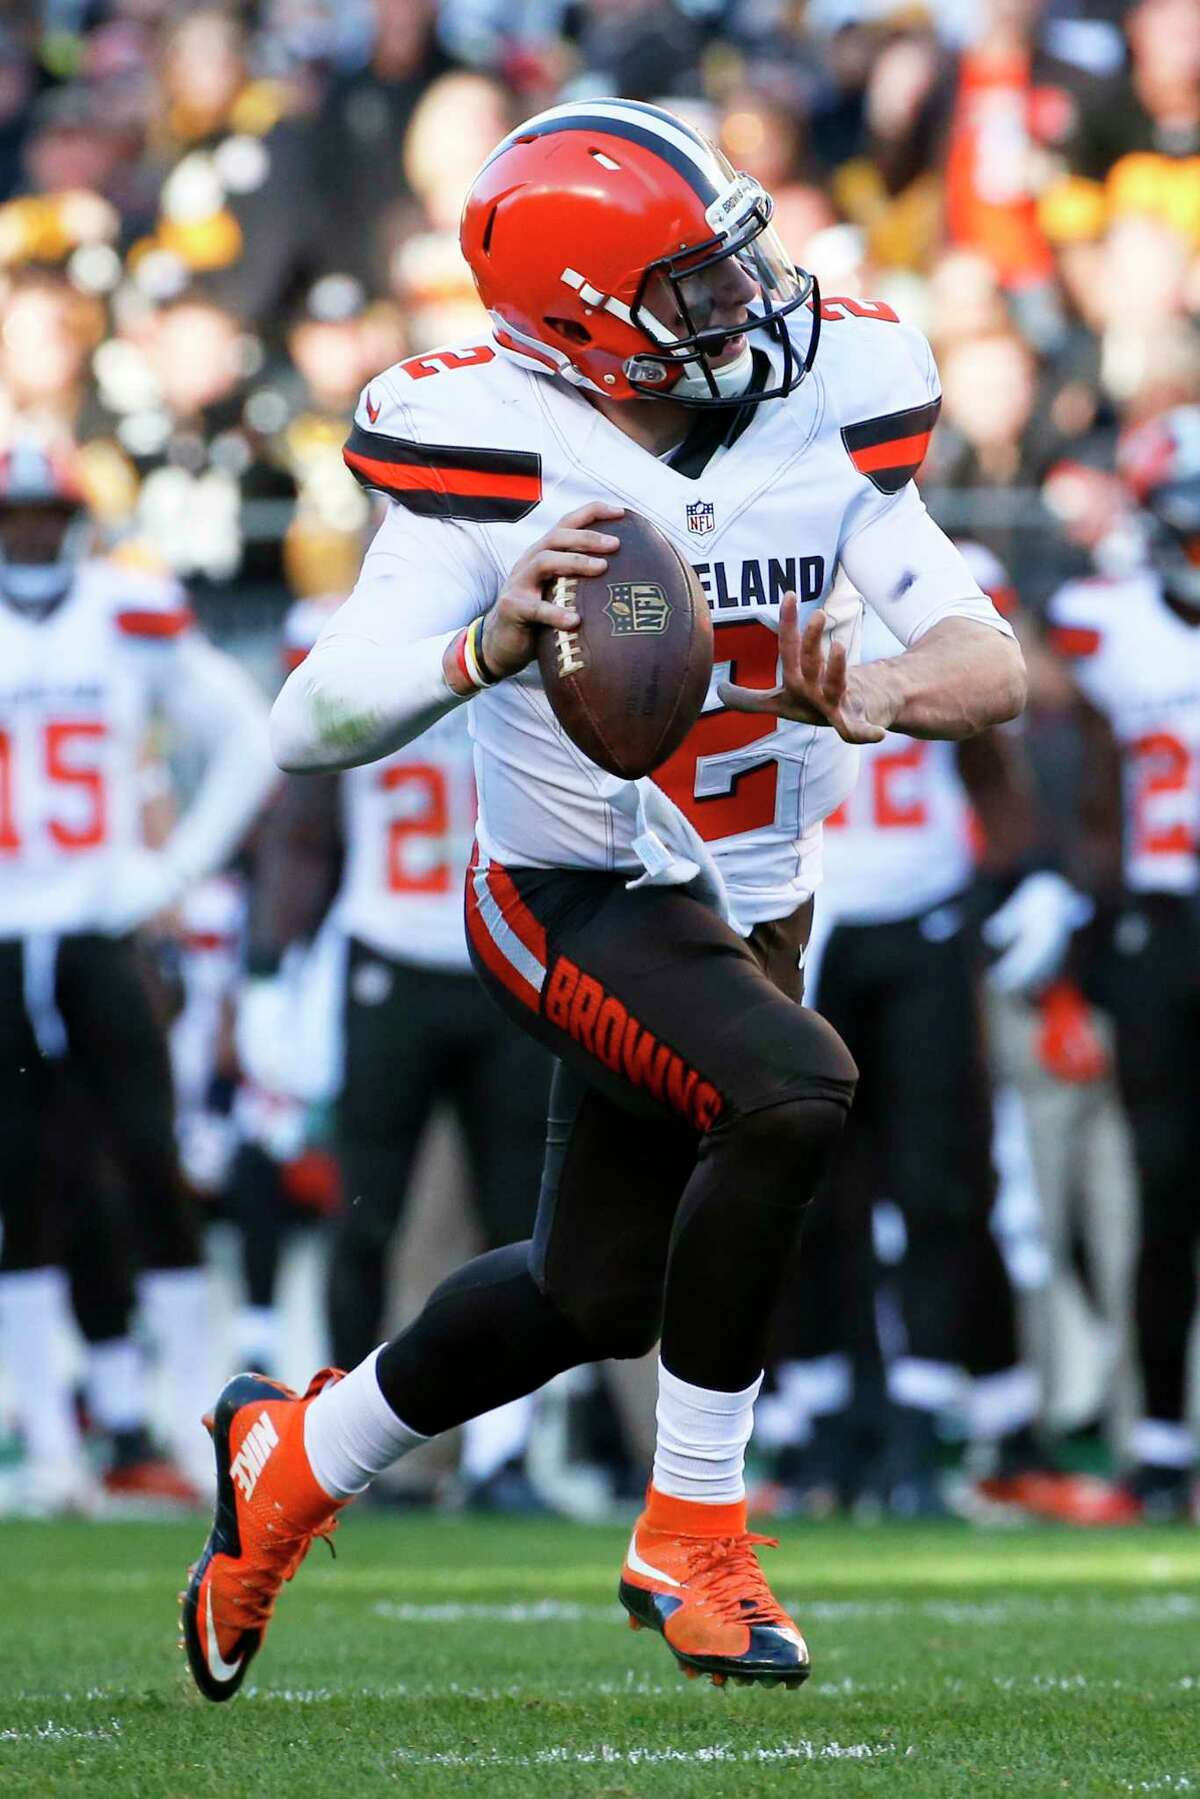 Cleveland Browns quarterback Johnny Manziel will be the starter for the rest of the season.